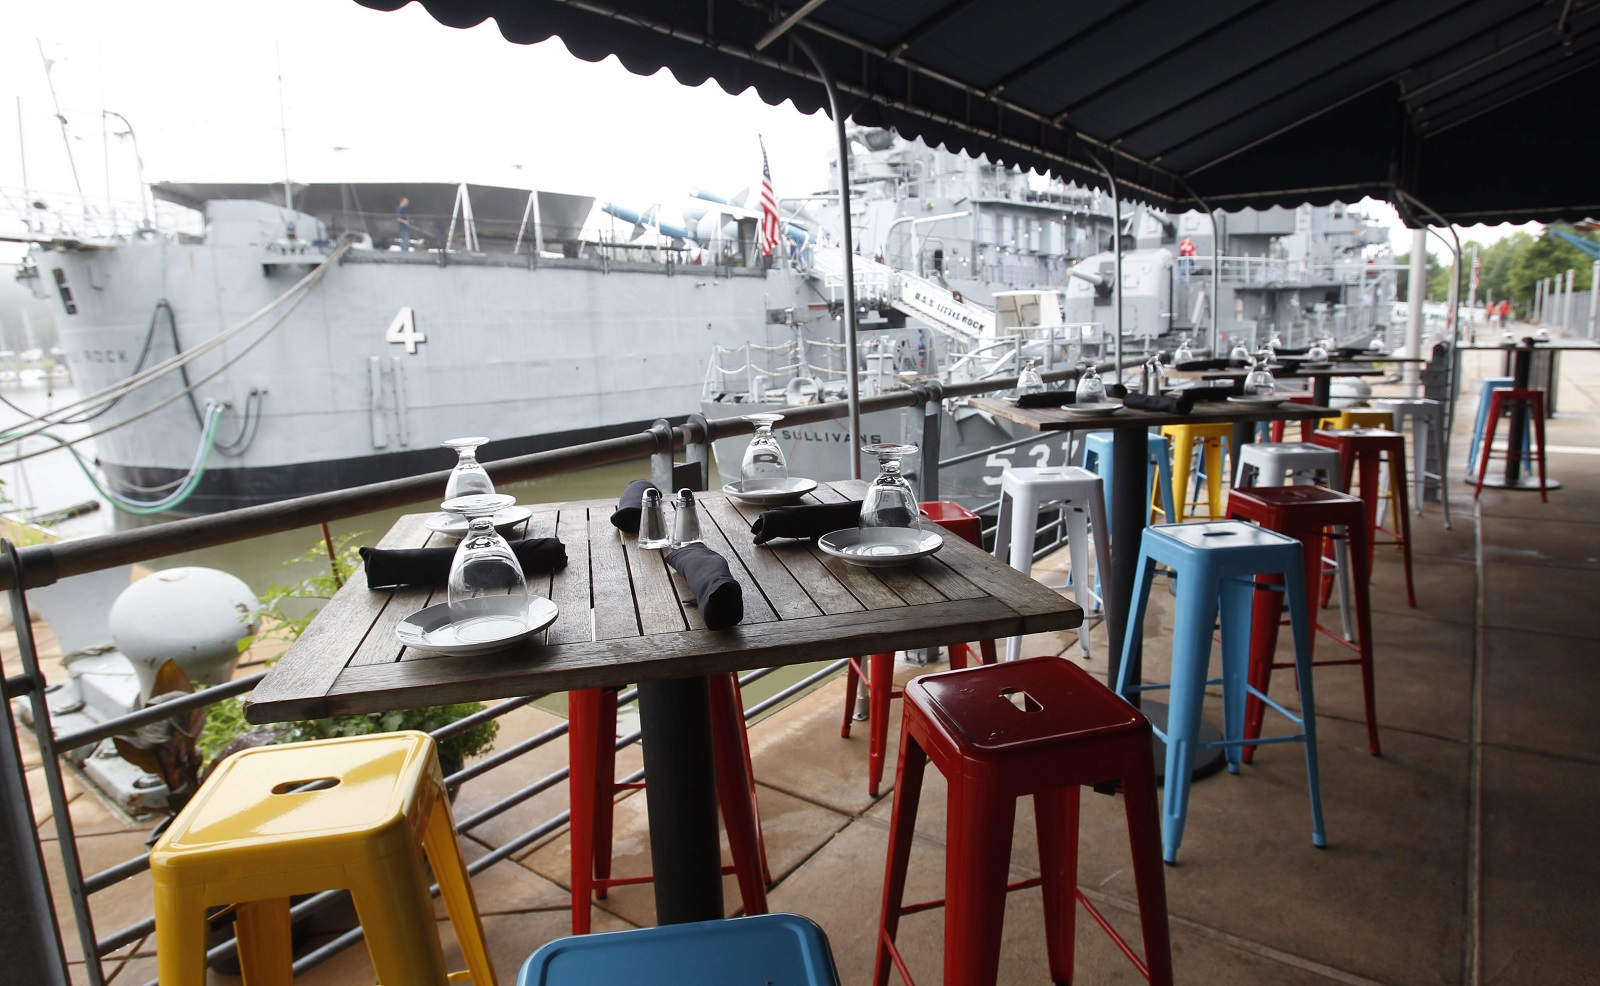 Vibrant chairs and a view that overlooks the Naval Park and the Buffalo River have helped make the Liberty Hound a seasonal destination. (Sharon Cantillon/News file photo)